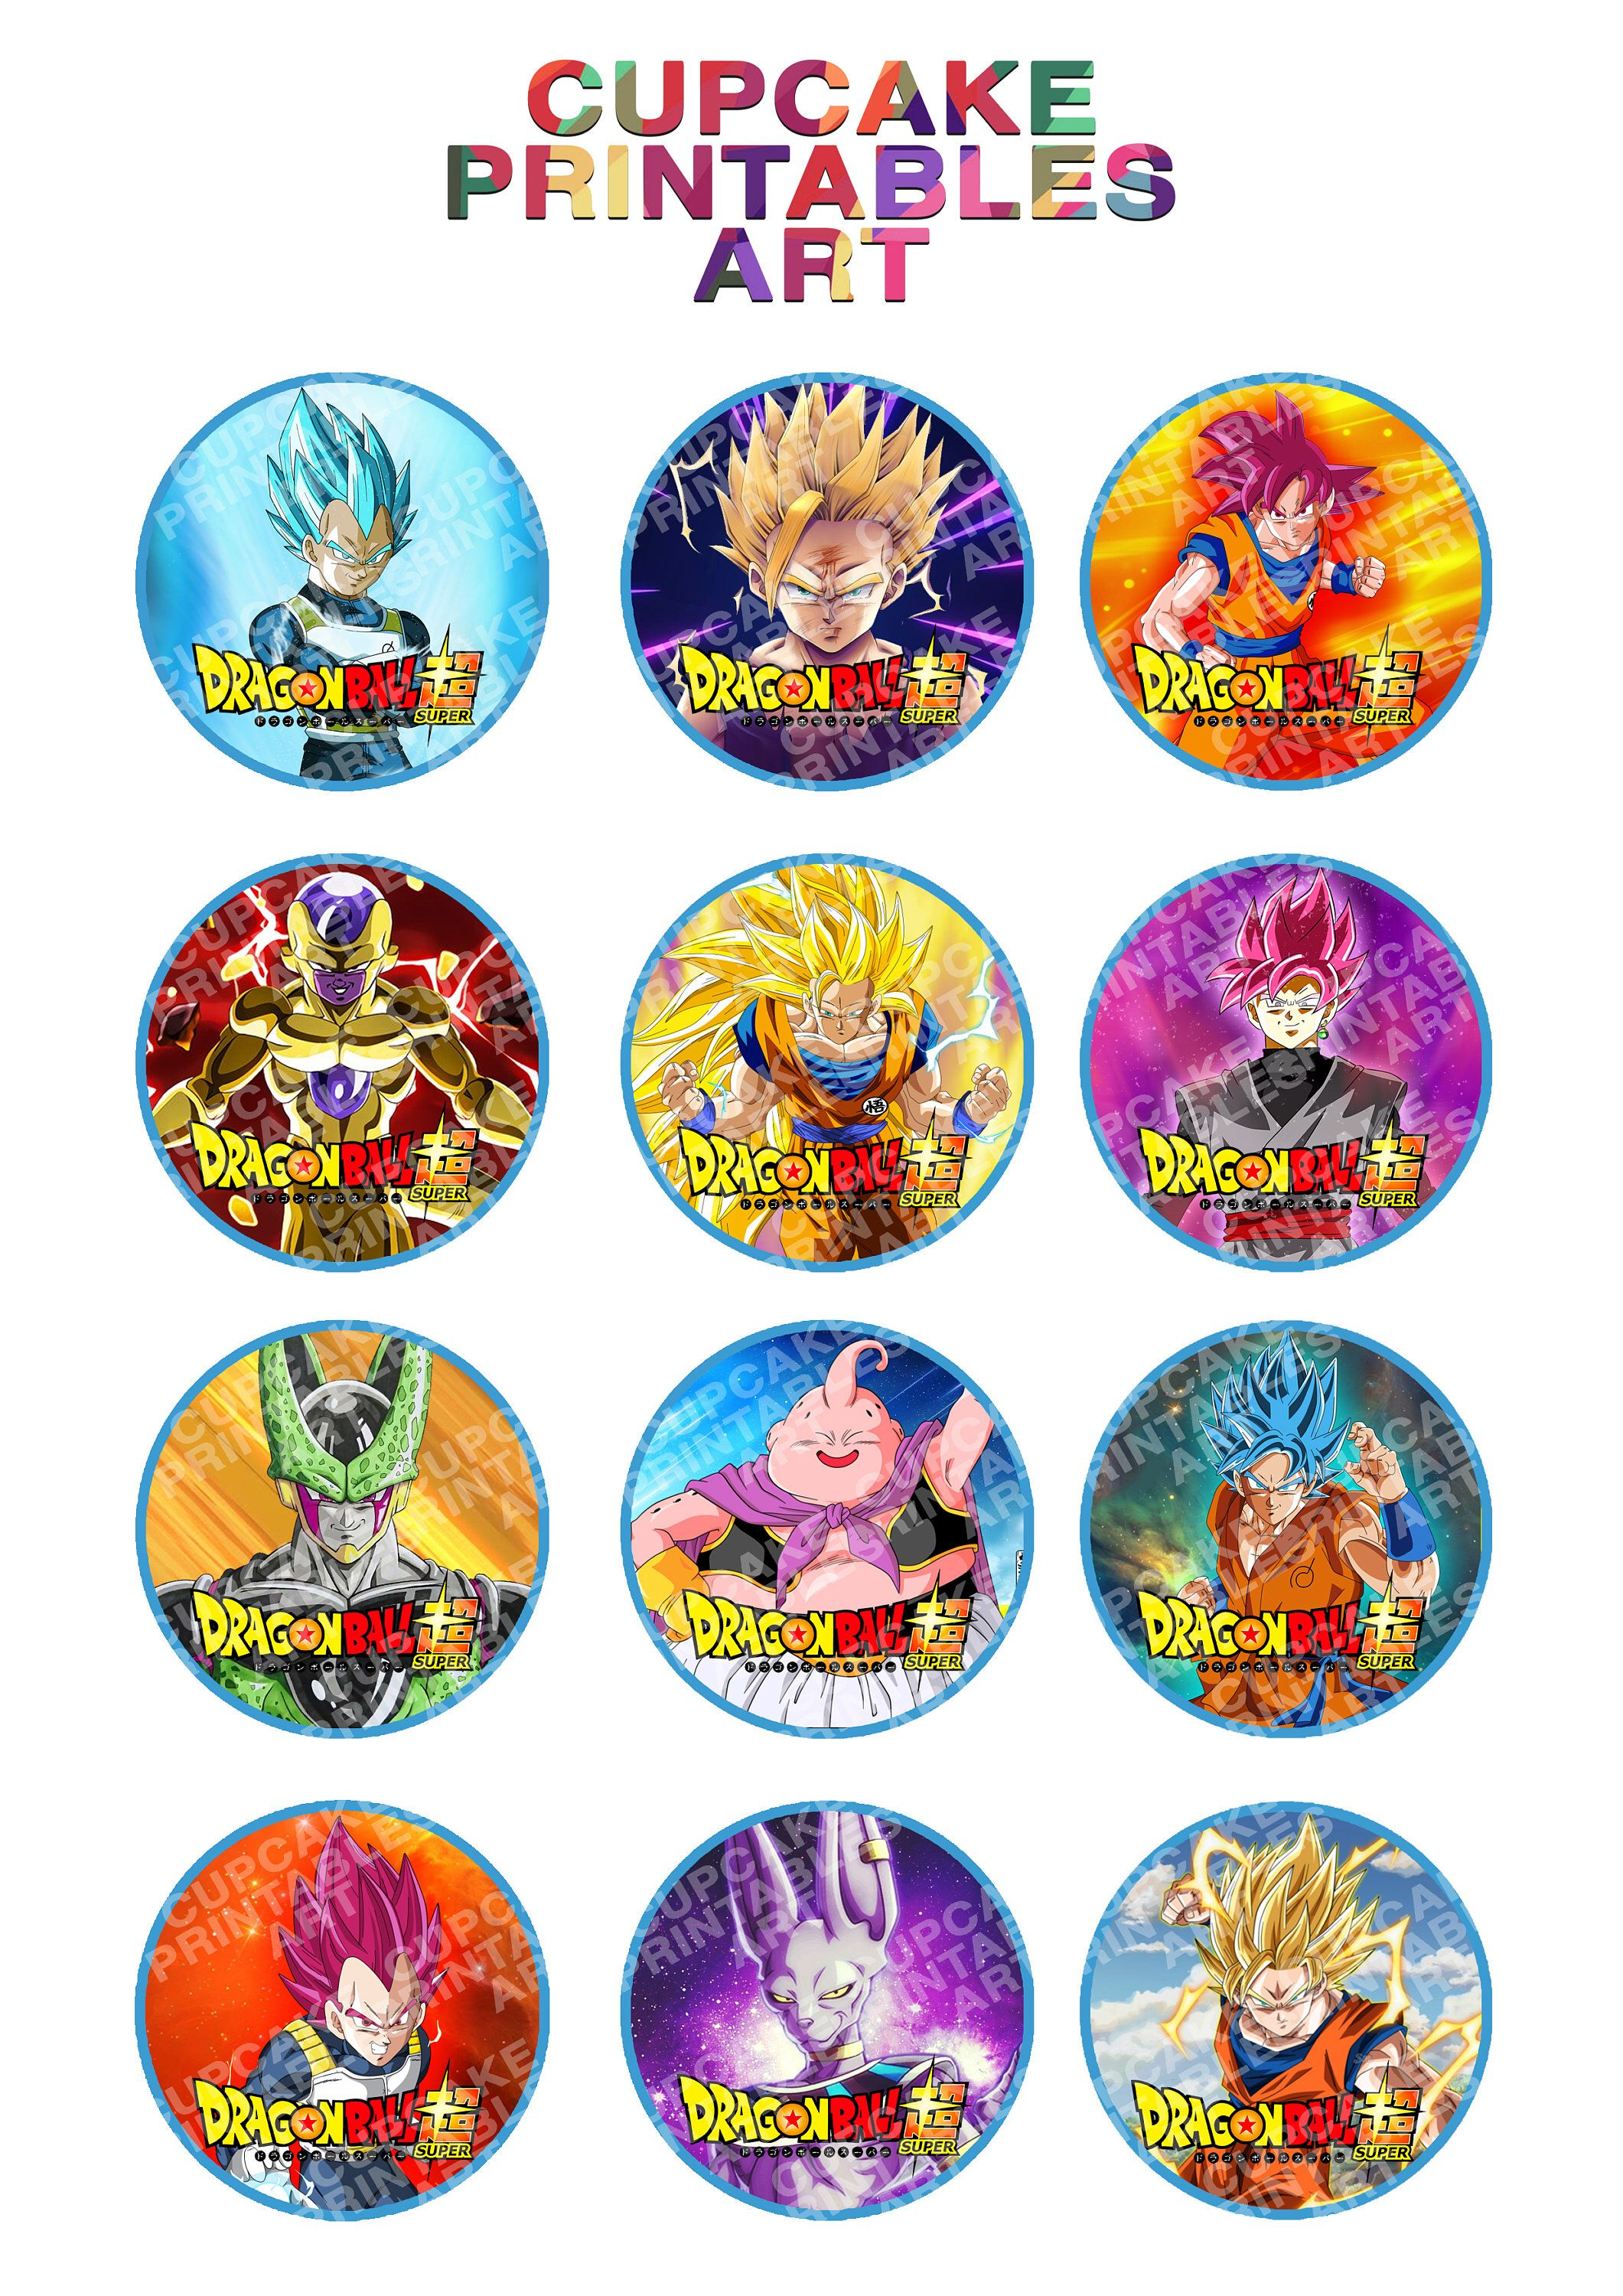 photo regarding Dragon Ball Z Printable identify Dragonball Tremendous Printable Cupcake Toppers Dragonball Z